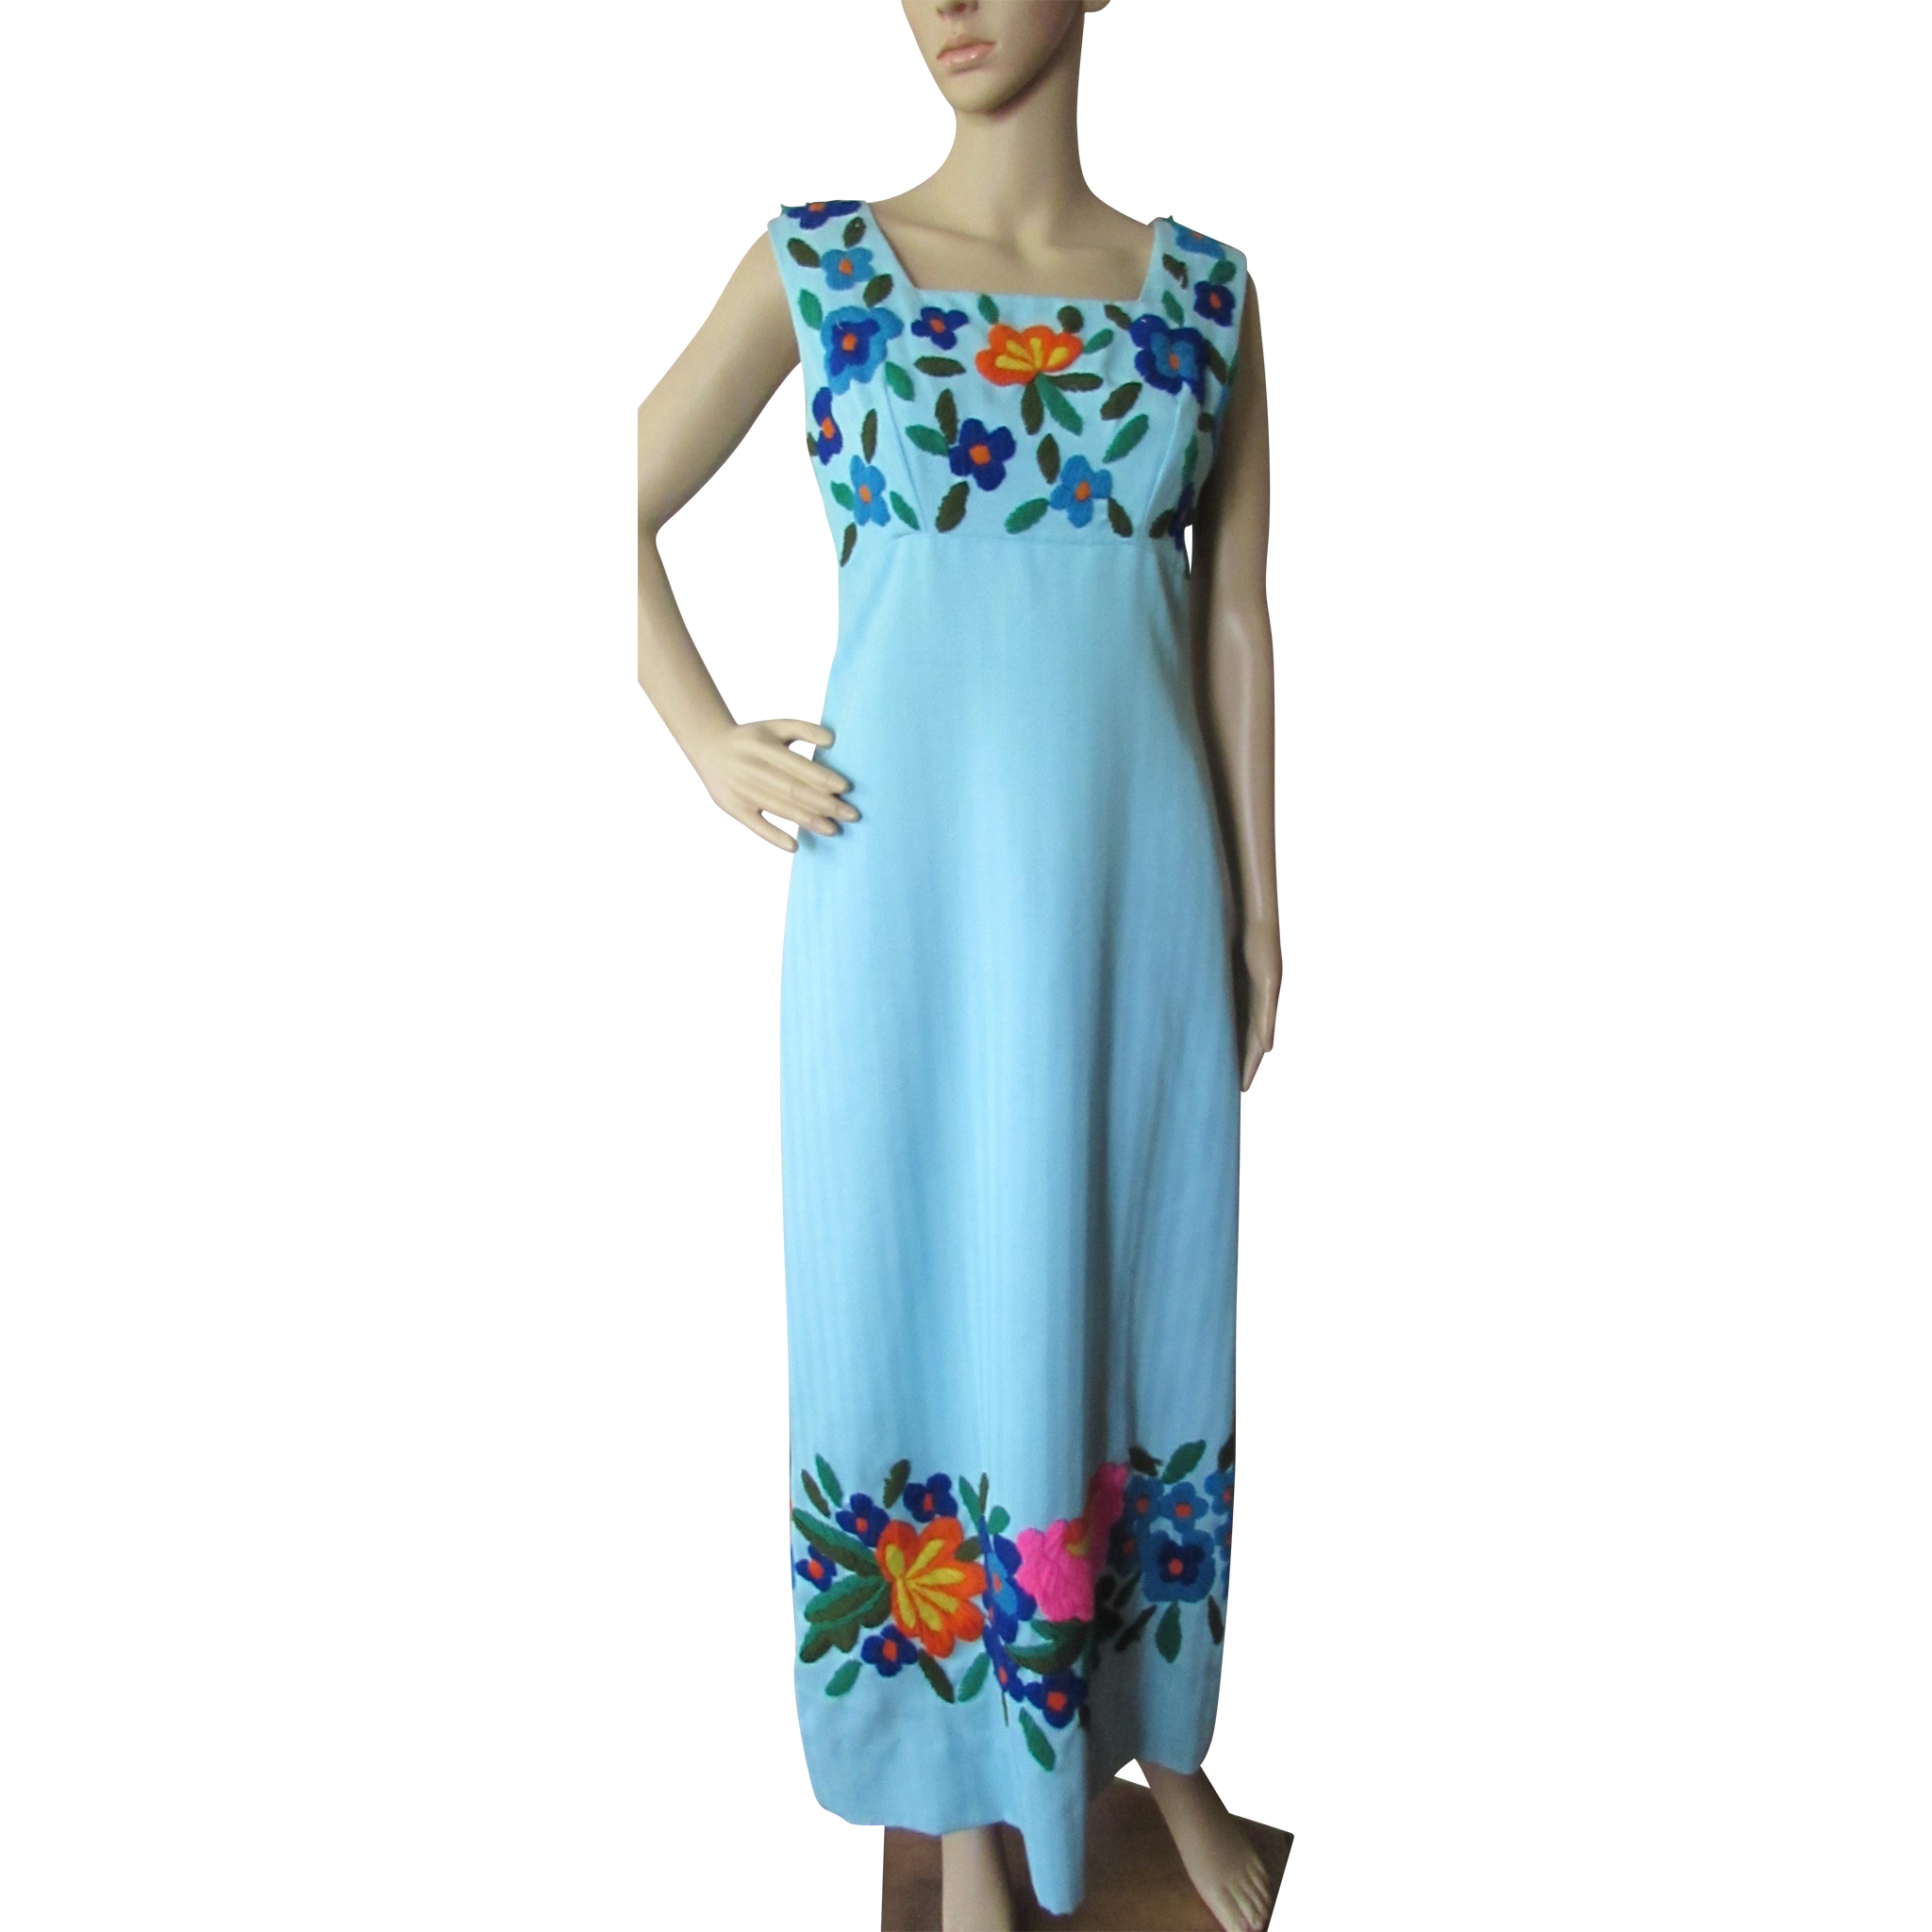 Boho Style Long Dress in Sky Blue with Yarn Embroidery Flowers Thelma Beach Ware Acapulco Mexico